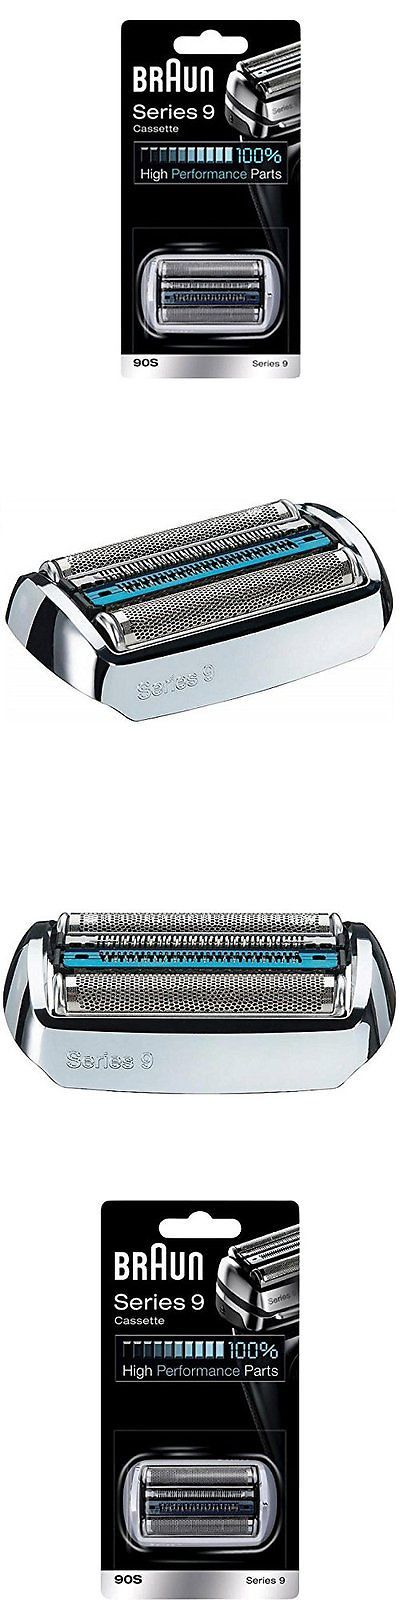 Shaver Parts and Accessories: Braun Series9 90S Shaver Foil Cutter Head Series Cassette -> BUY IT NOW ONLY: $99.99 on eBay!